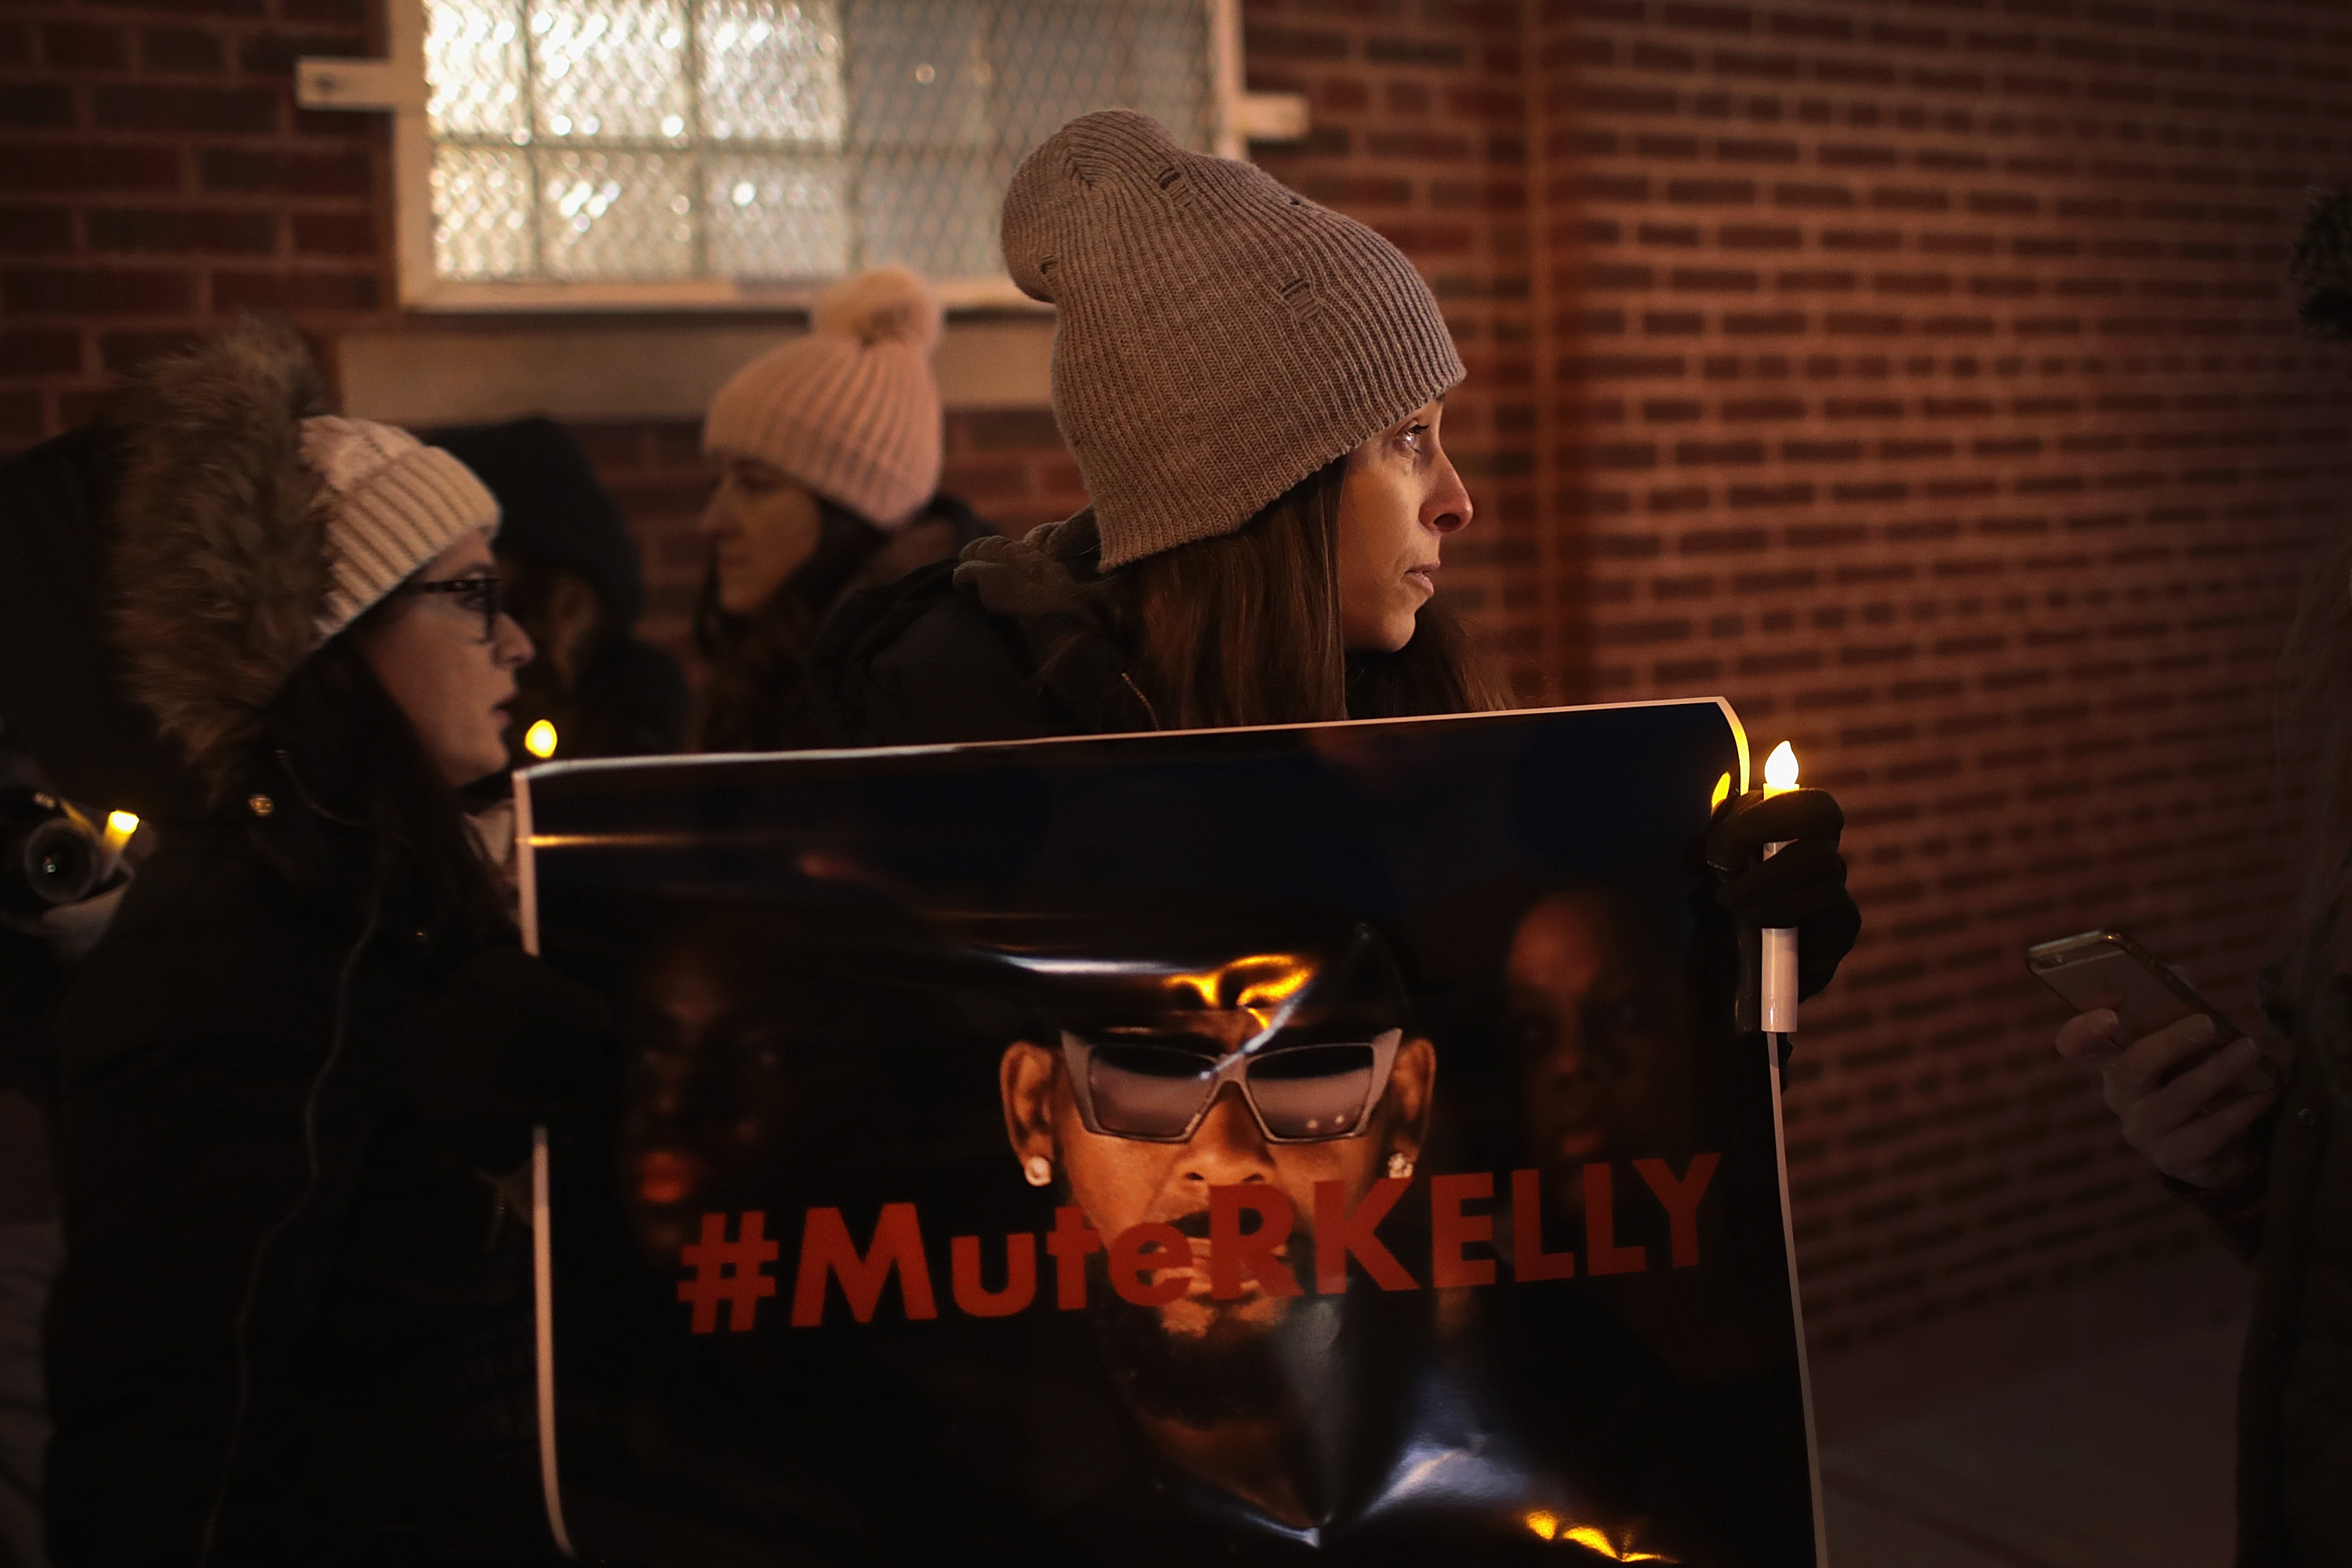 R. Kelly may be facing indictment on child pornography charges. Again.